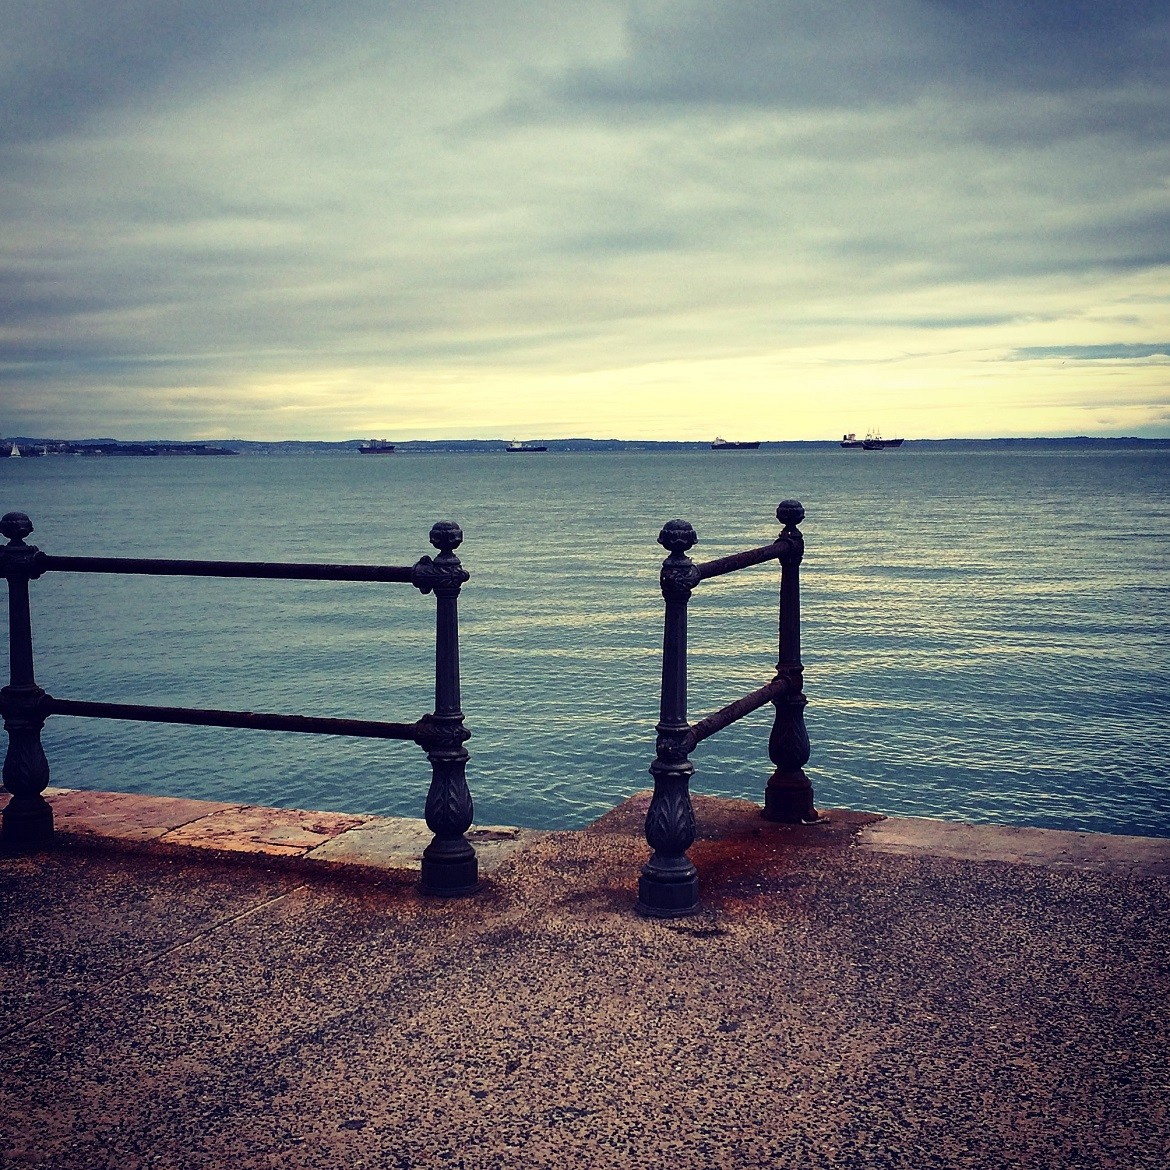 A walk along the seafront goes without saying...